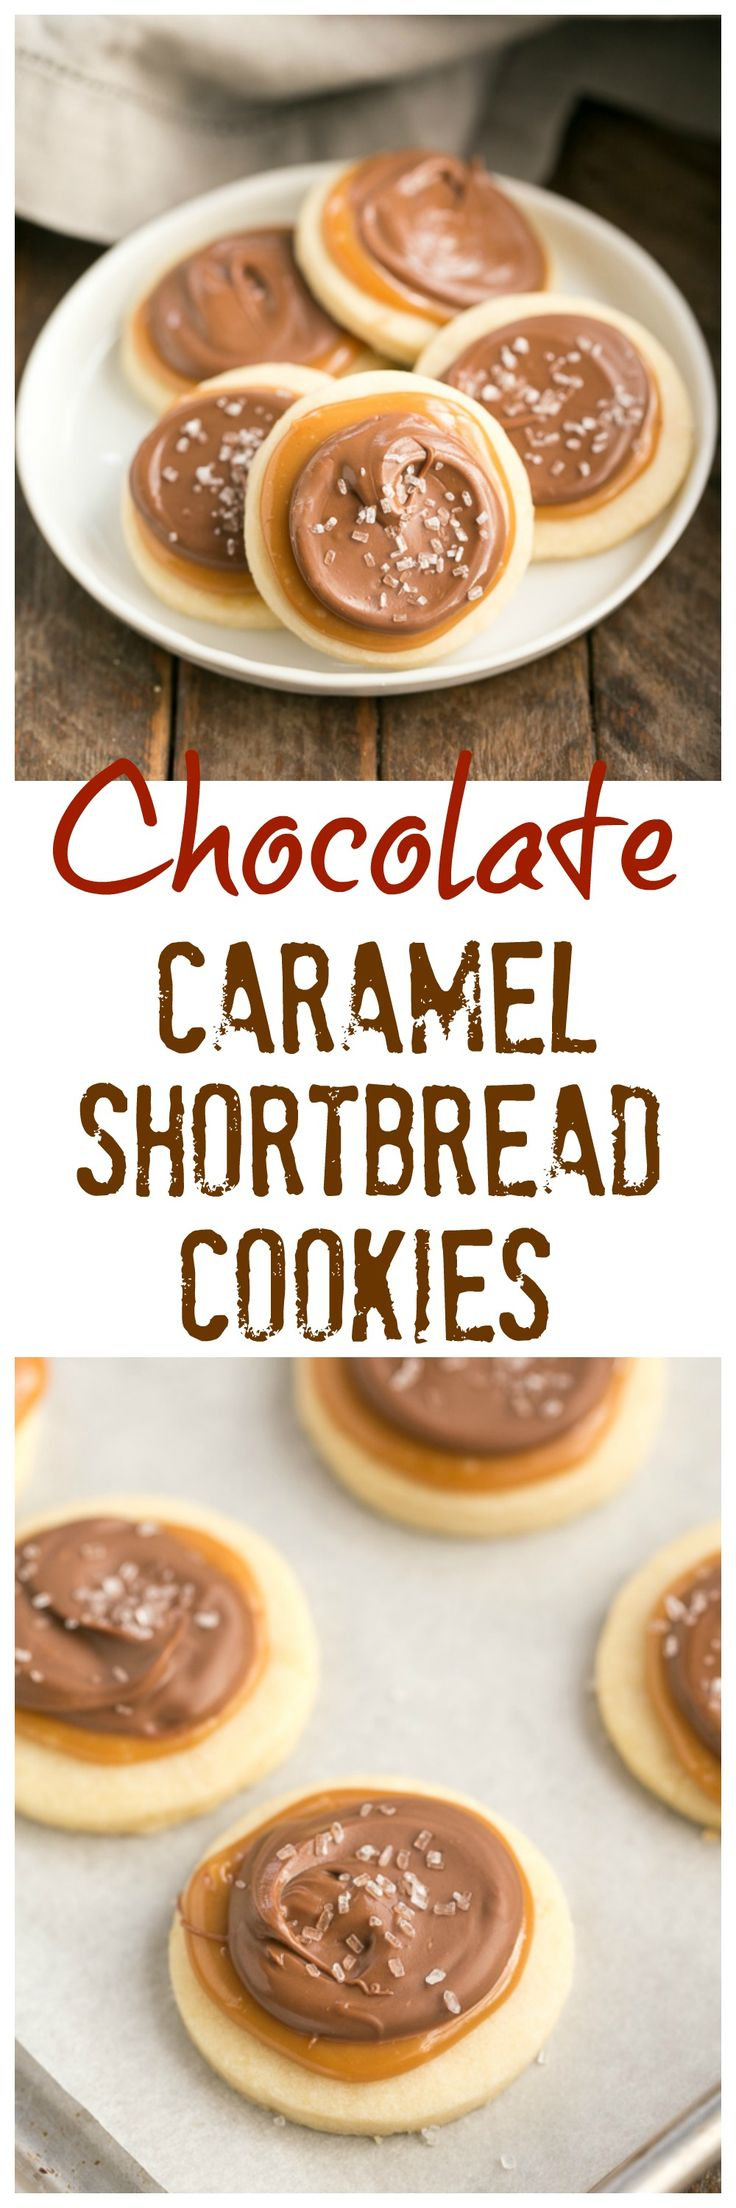 Chocolate Caramel Shortbread Cookies | All the flavors of a Twix bar in one delectable cookie! @lizzydo